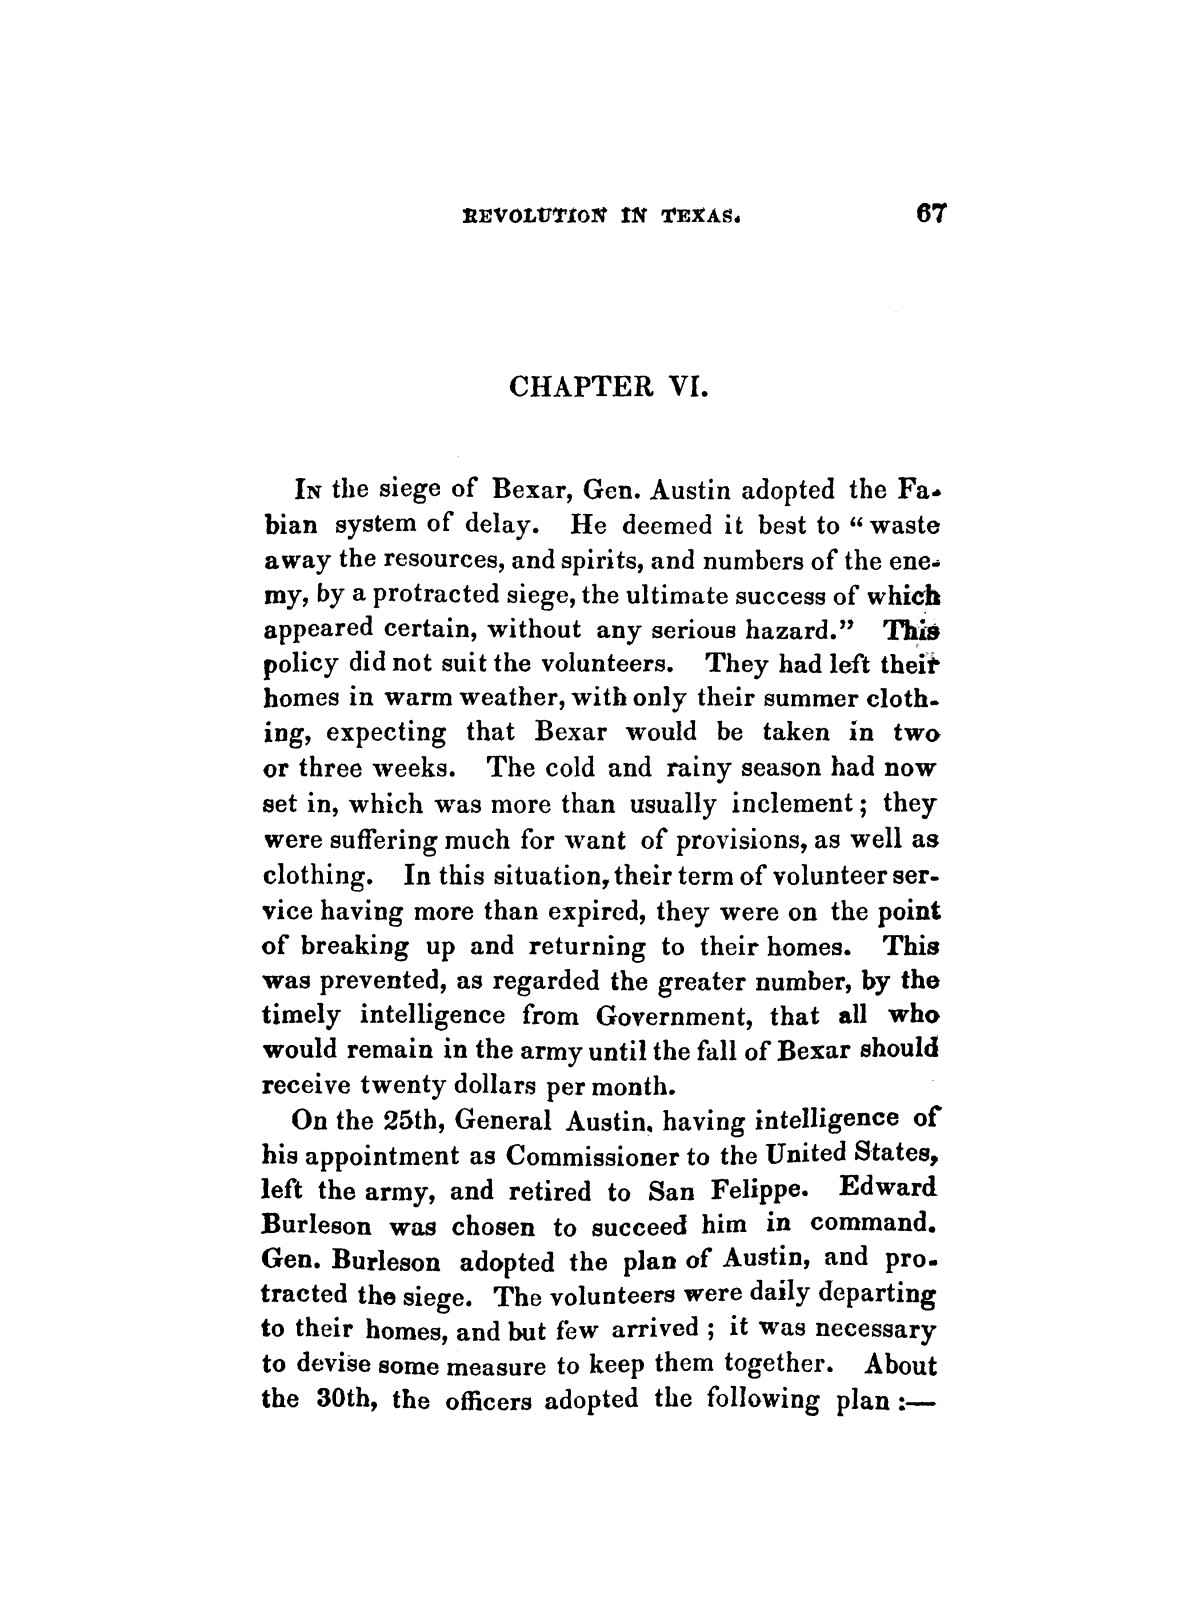 History of the revolution in Texas, particularly of the war of 1835 & '36; together with the latest geographical, topographical, and statistical accounts of the country, from the most authentic sources. Also, an appendix. By the Rev. C. Newell.                                                                                                      [Sequence #]: 79 of 227